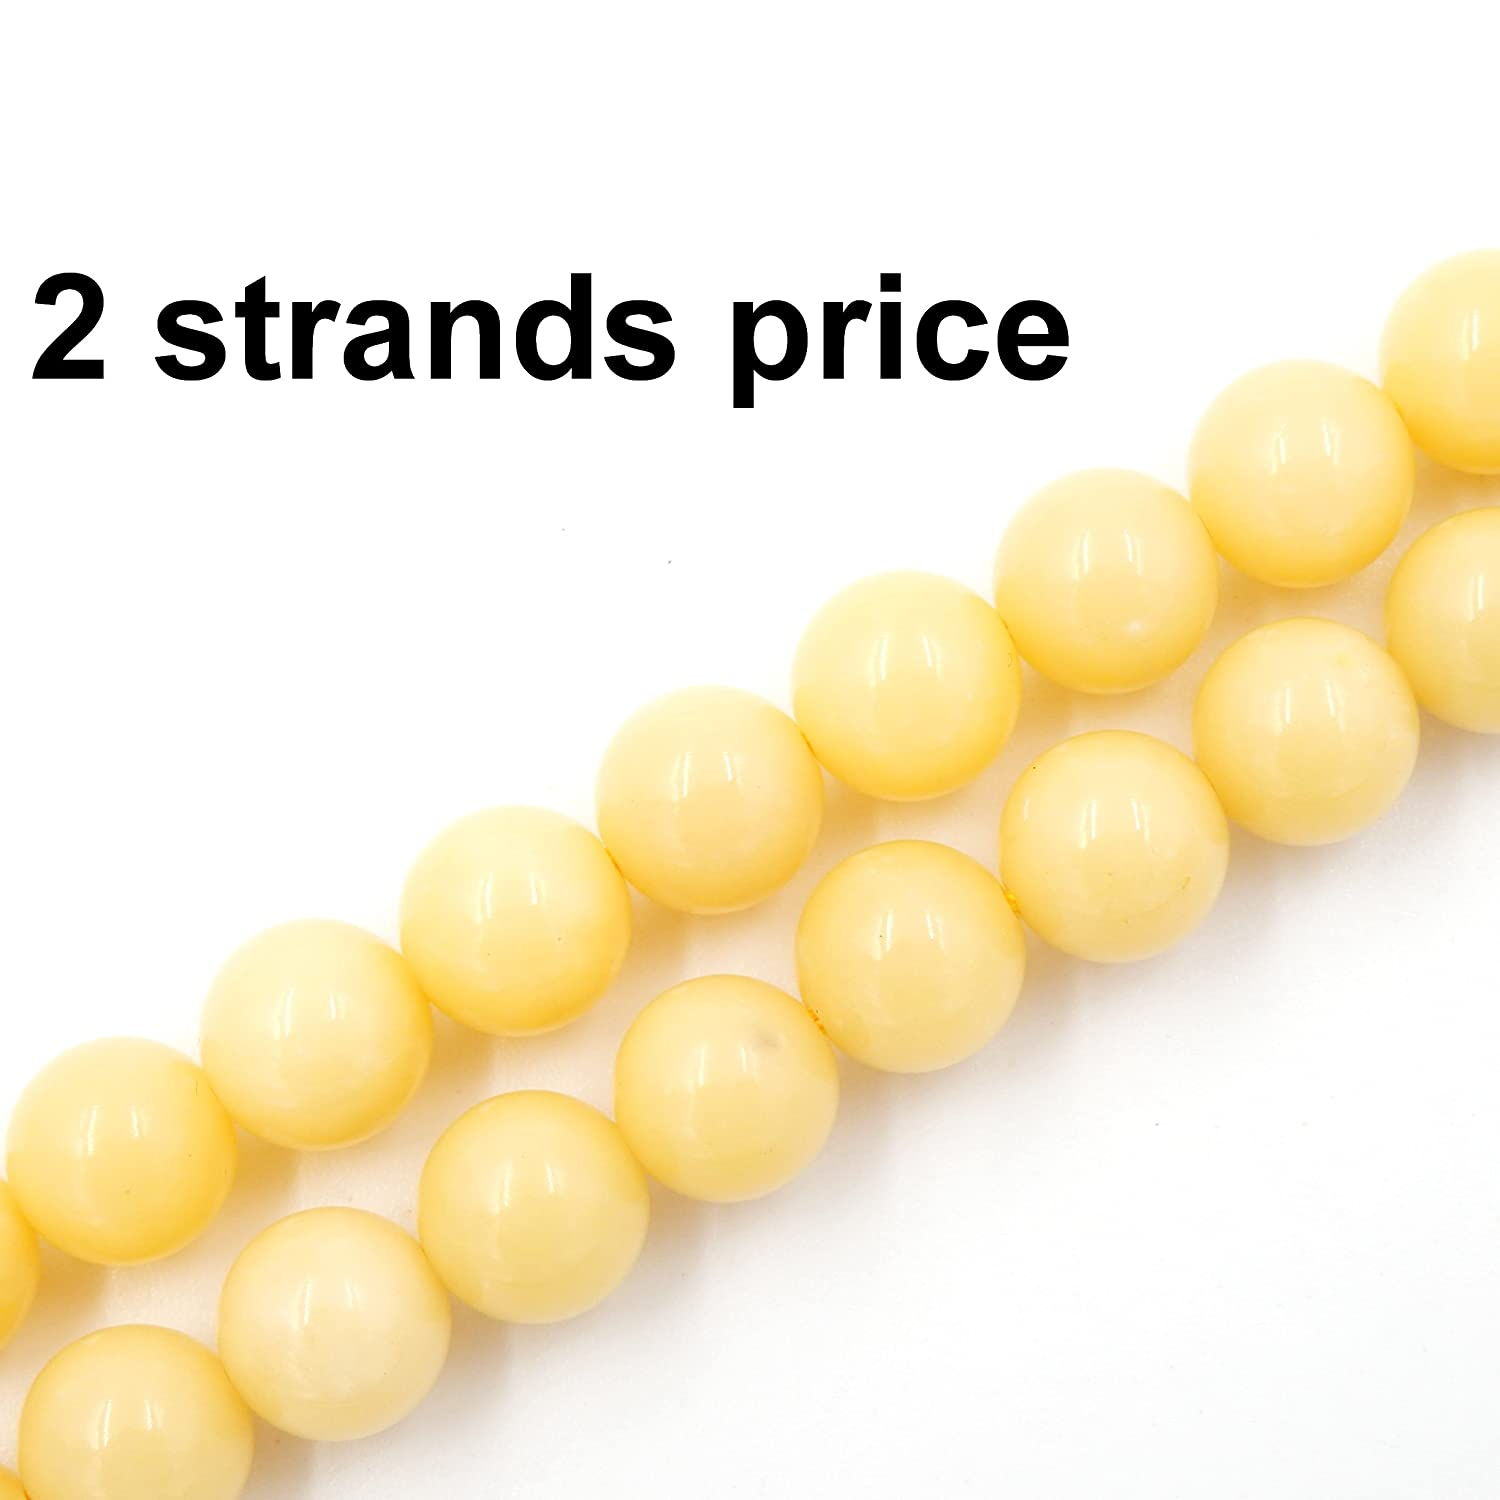 Wax Jade 8mm Precious Gemstone Beads for Jewelry Making, 100% Natural AAA Grade, Sold per Bag 2 Strands Inside (Chrysocolla, 6mm)